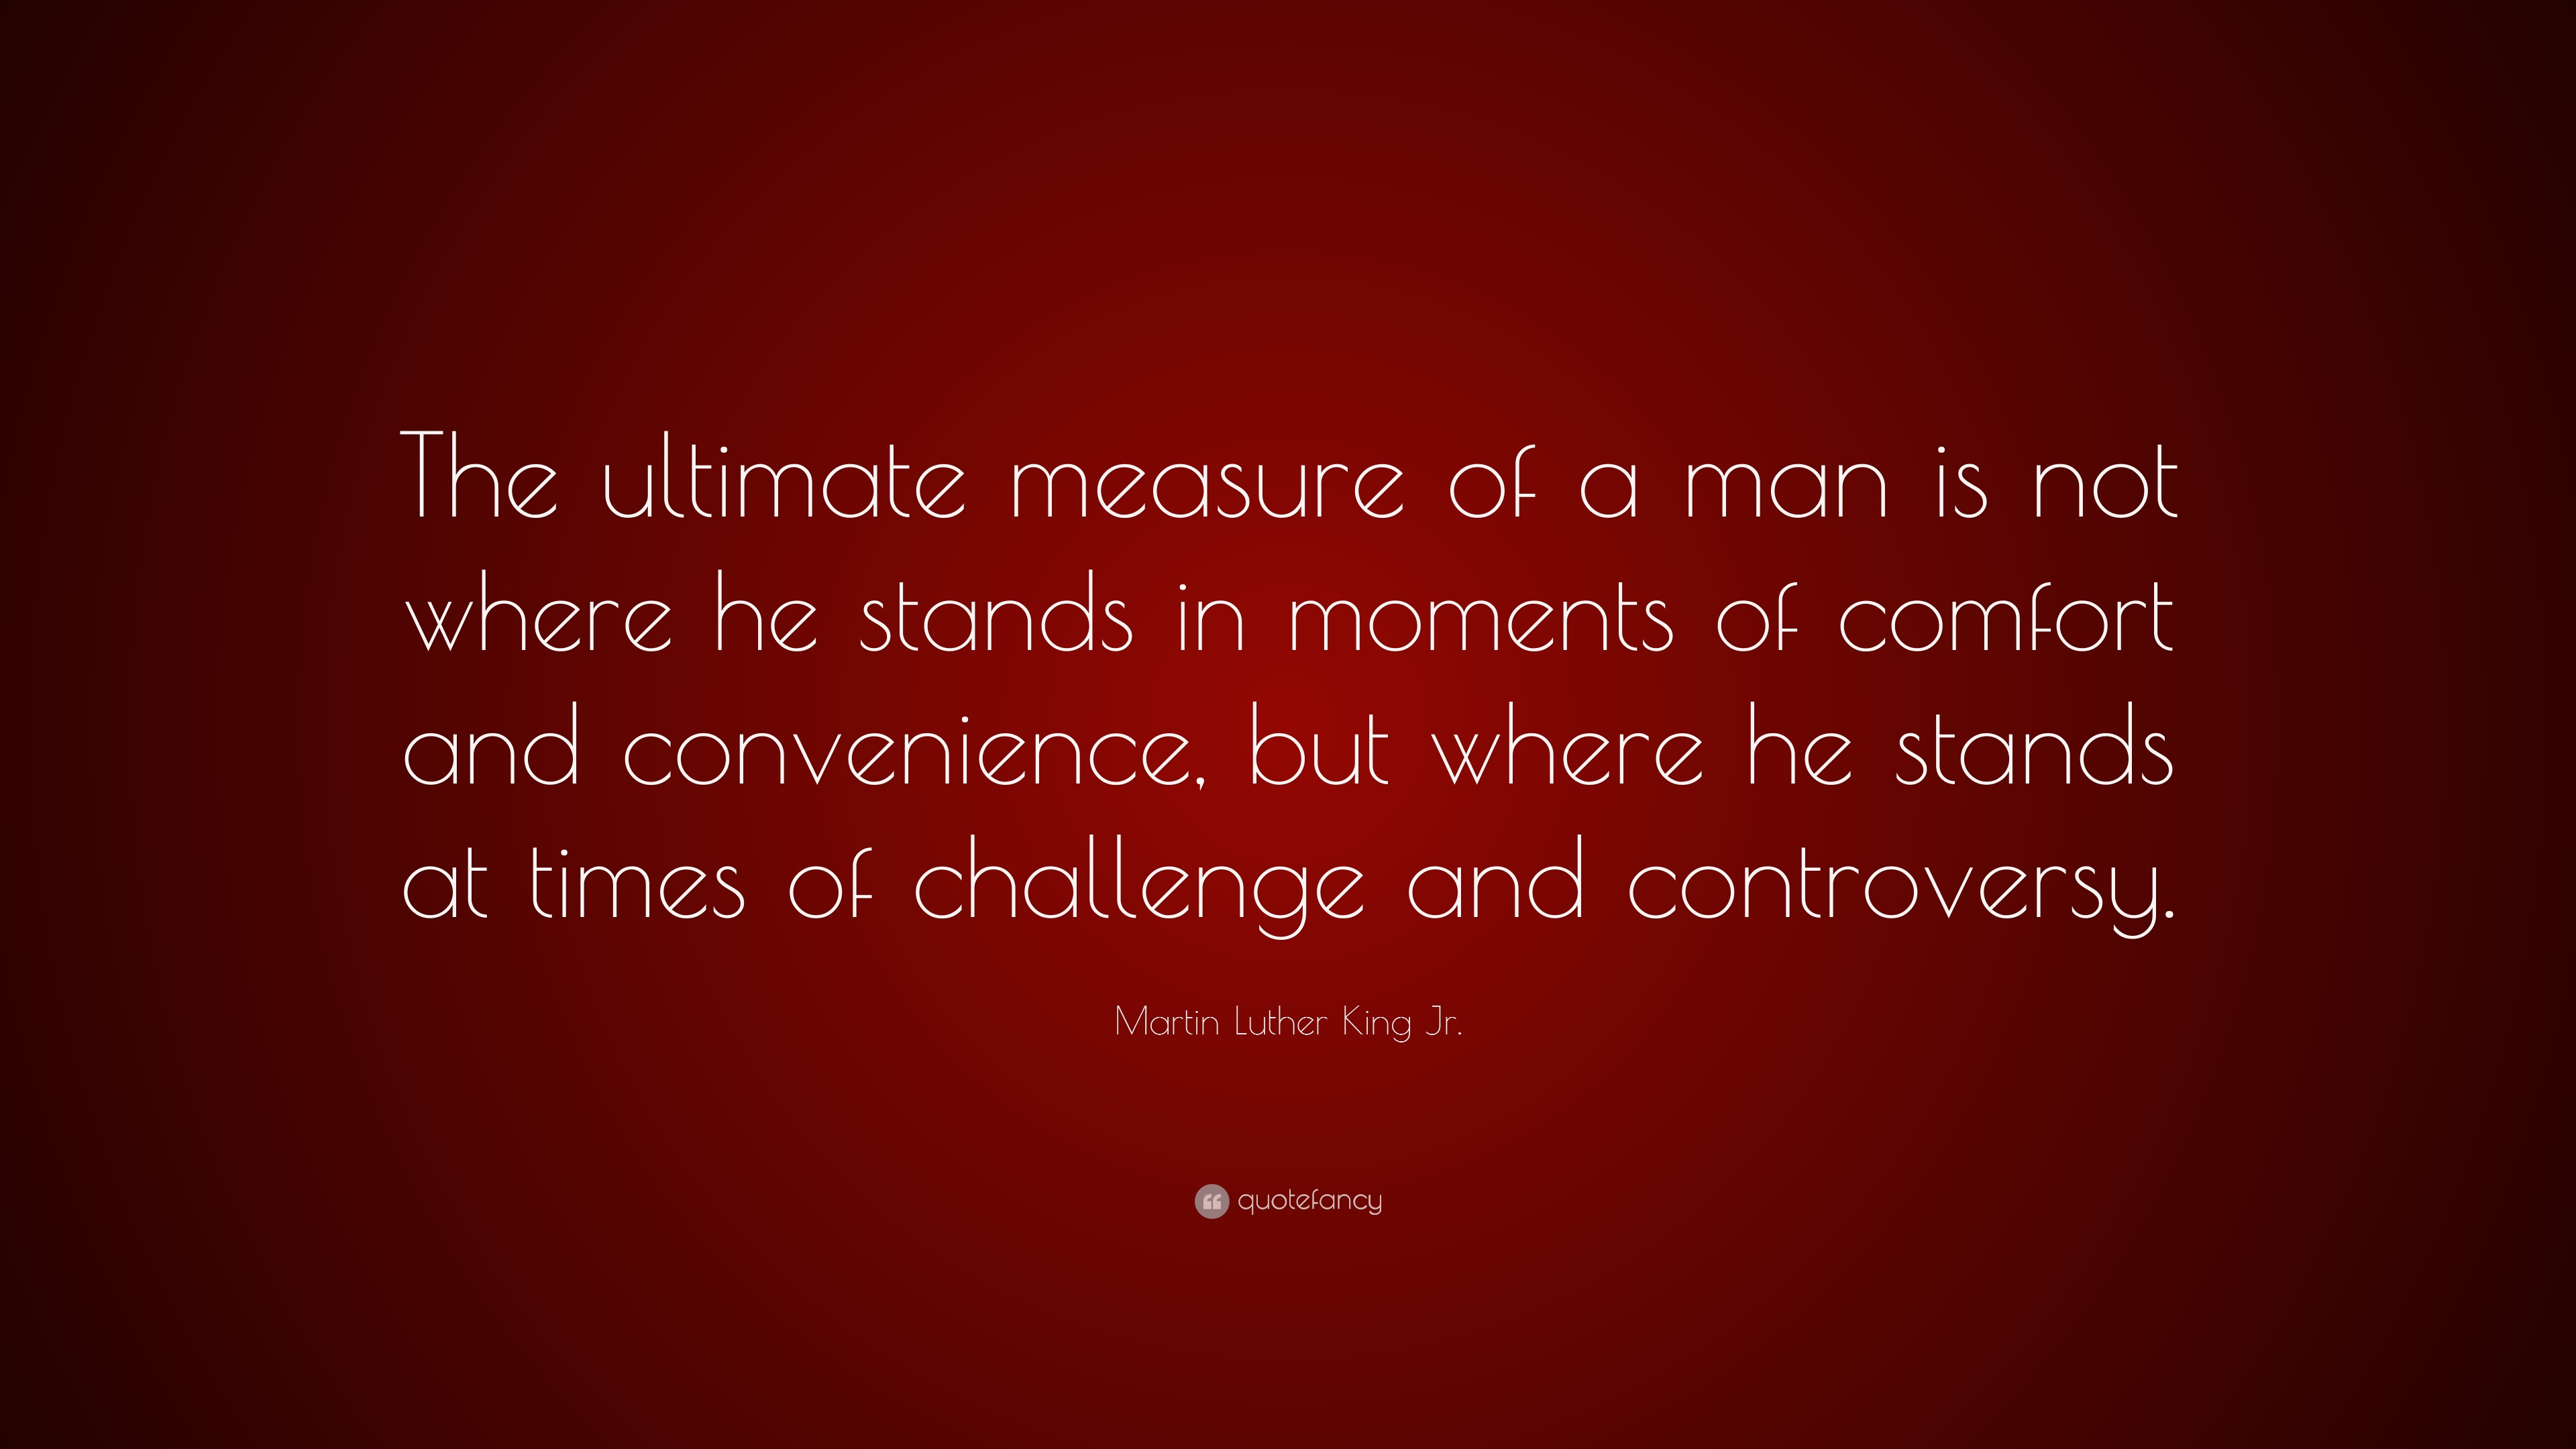 Martin Luther King Jr Quote The Ultimate Measure Of A Man Is Not